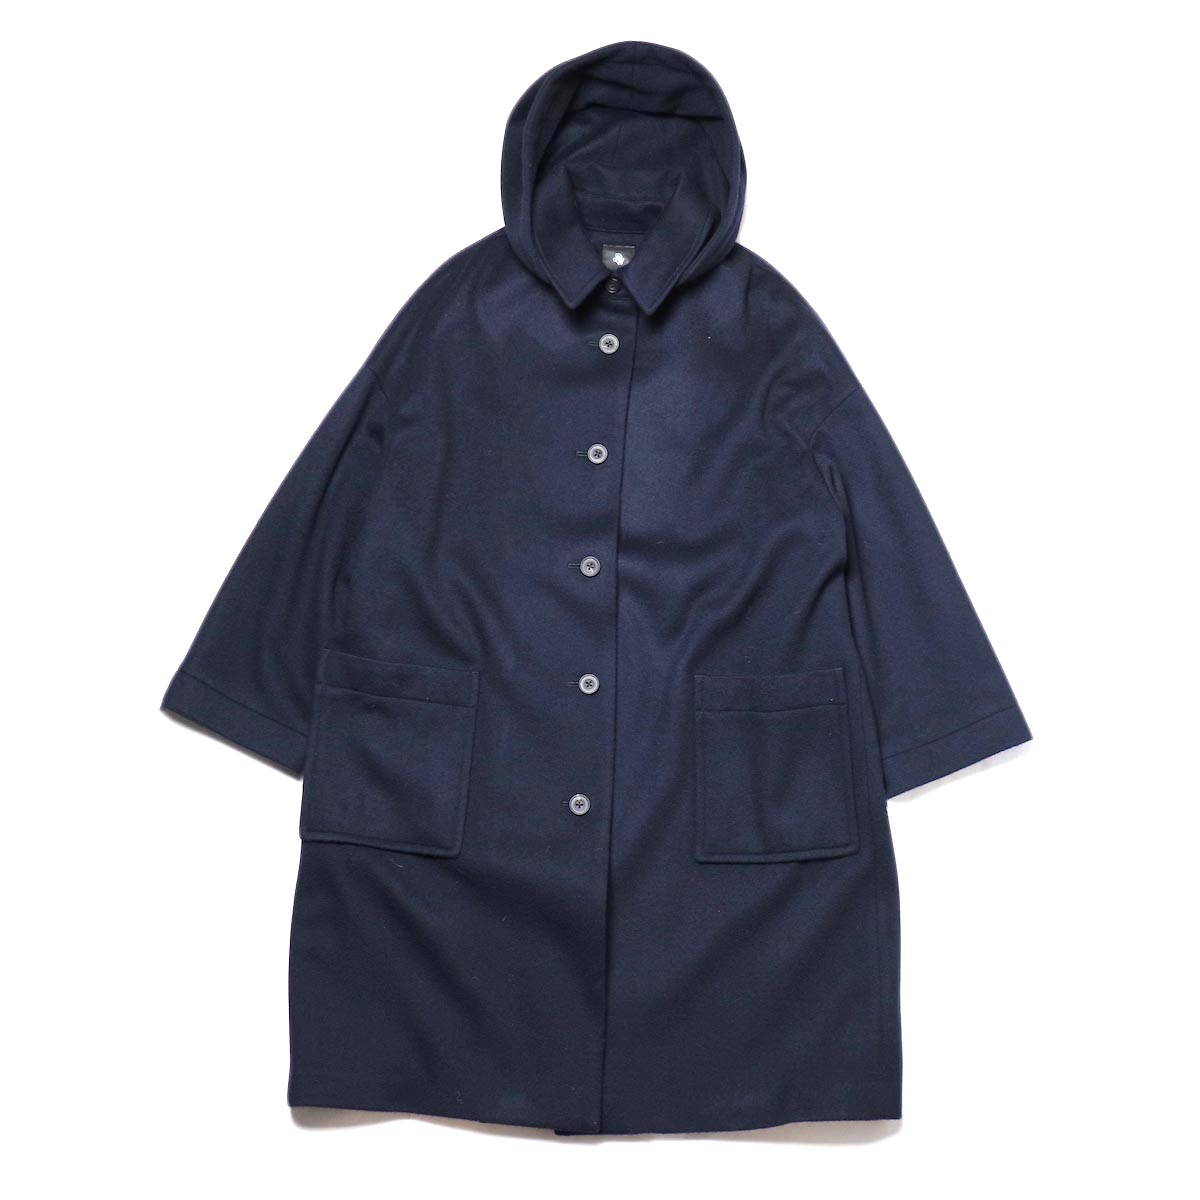 maison de soil / DETACHABLE HOODED COAT (Navy)